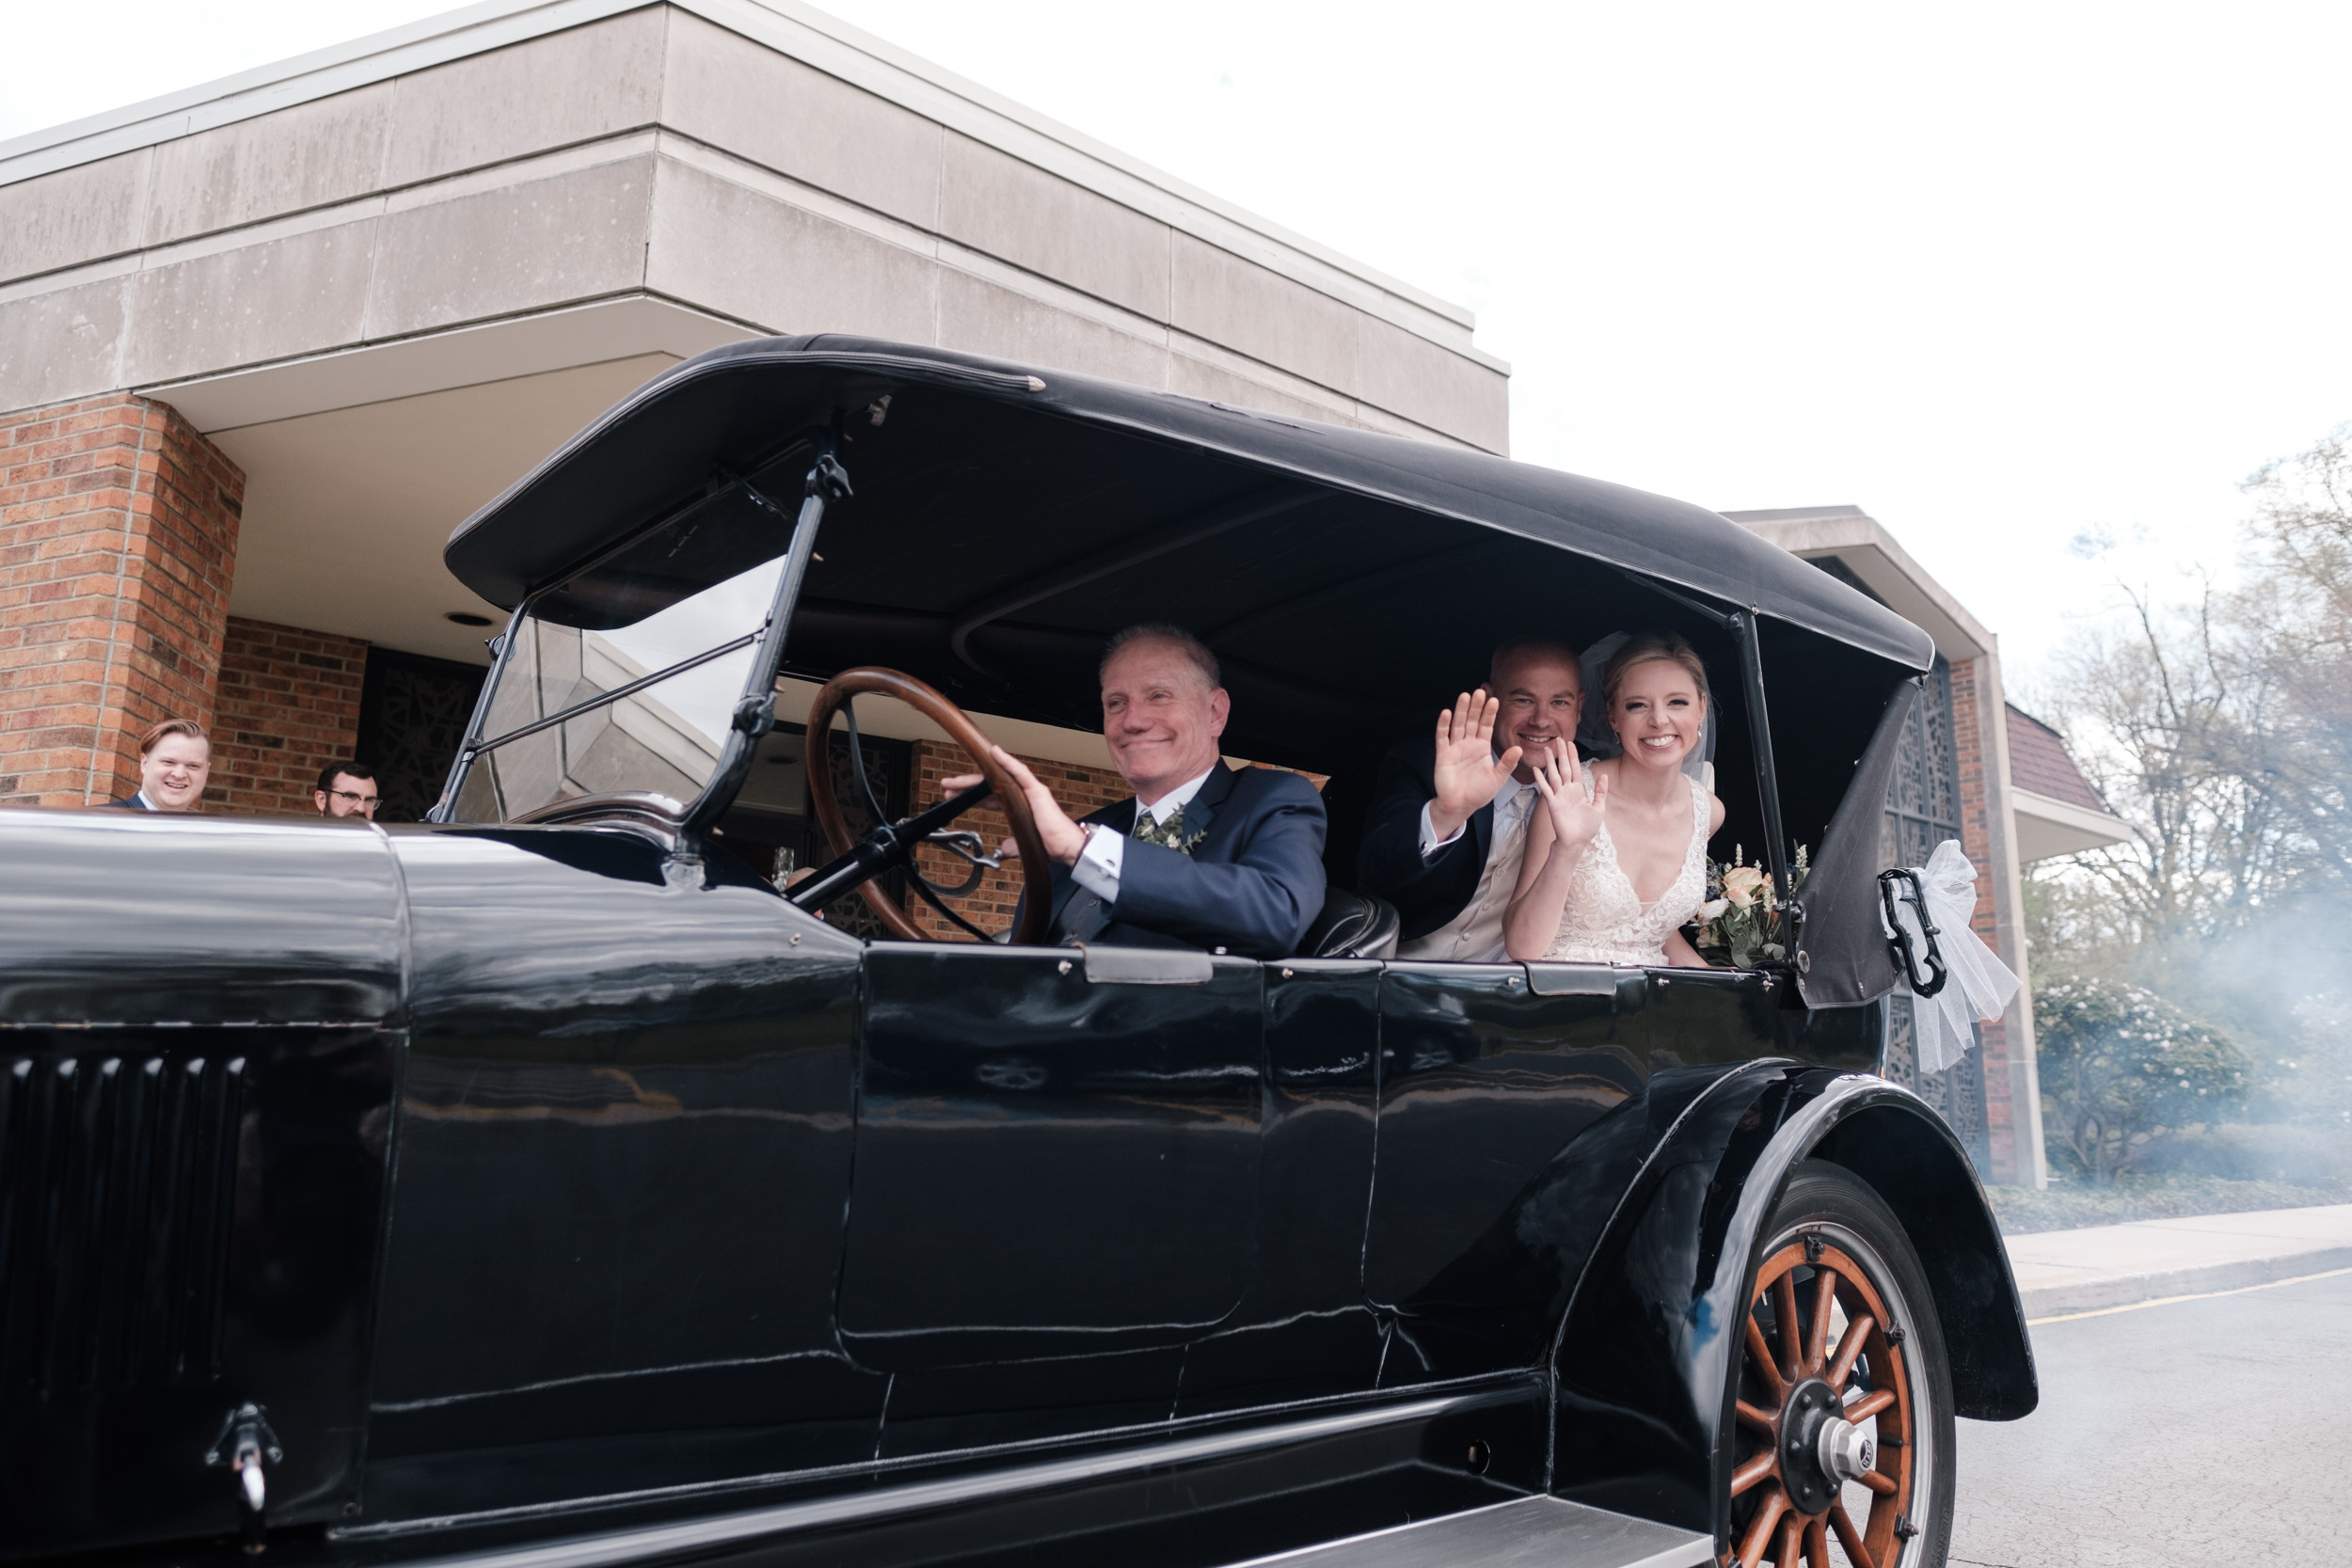 bride and groom ride away in classic car 1921 NASh convertible on wedding day